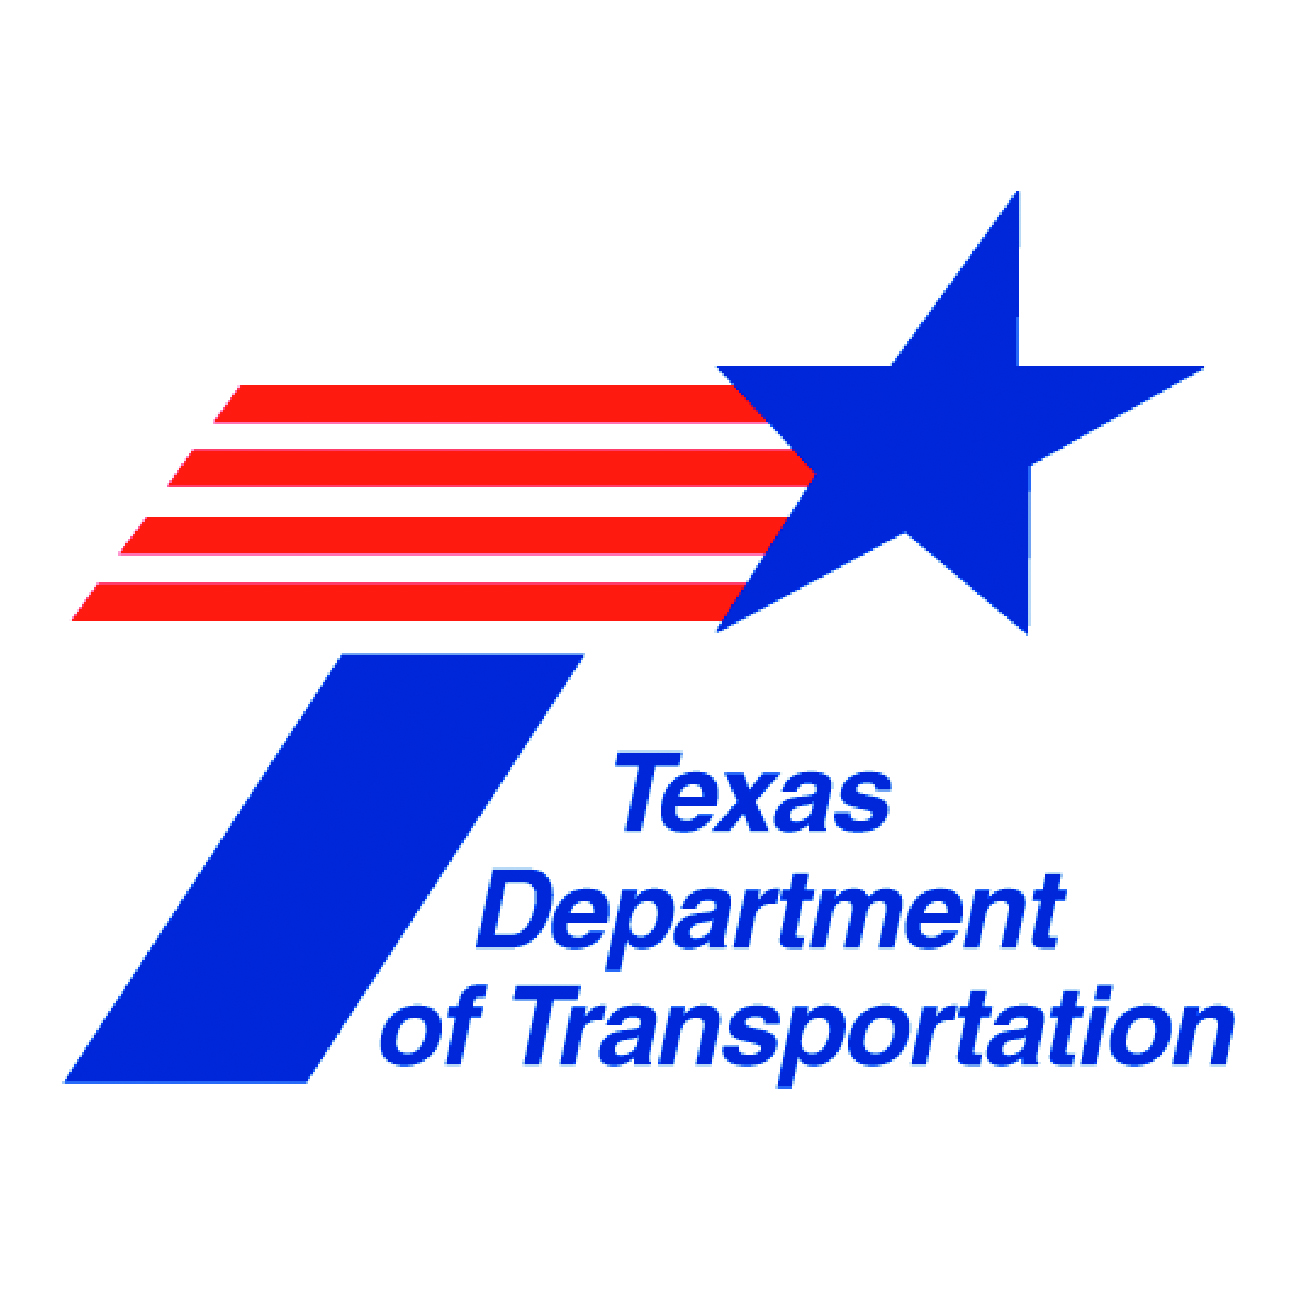 txdotlogo copy